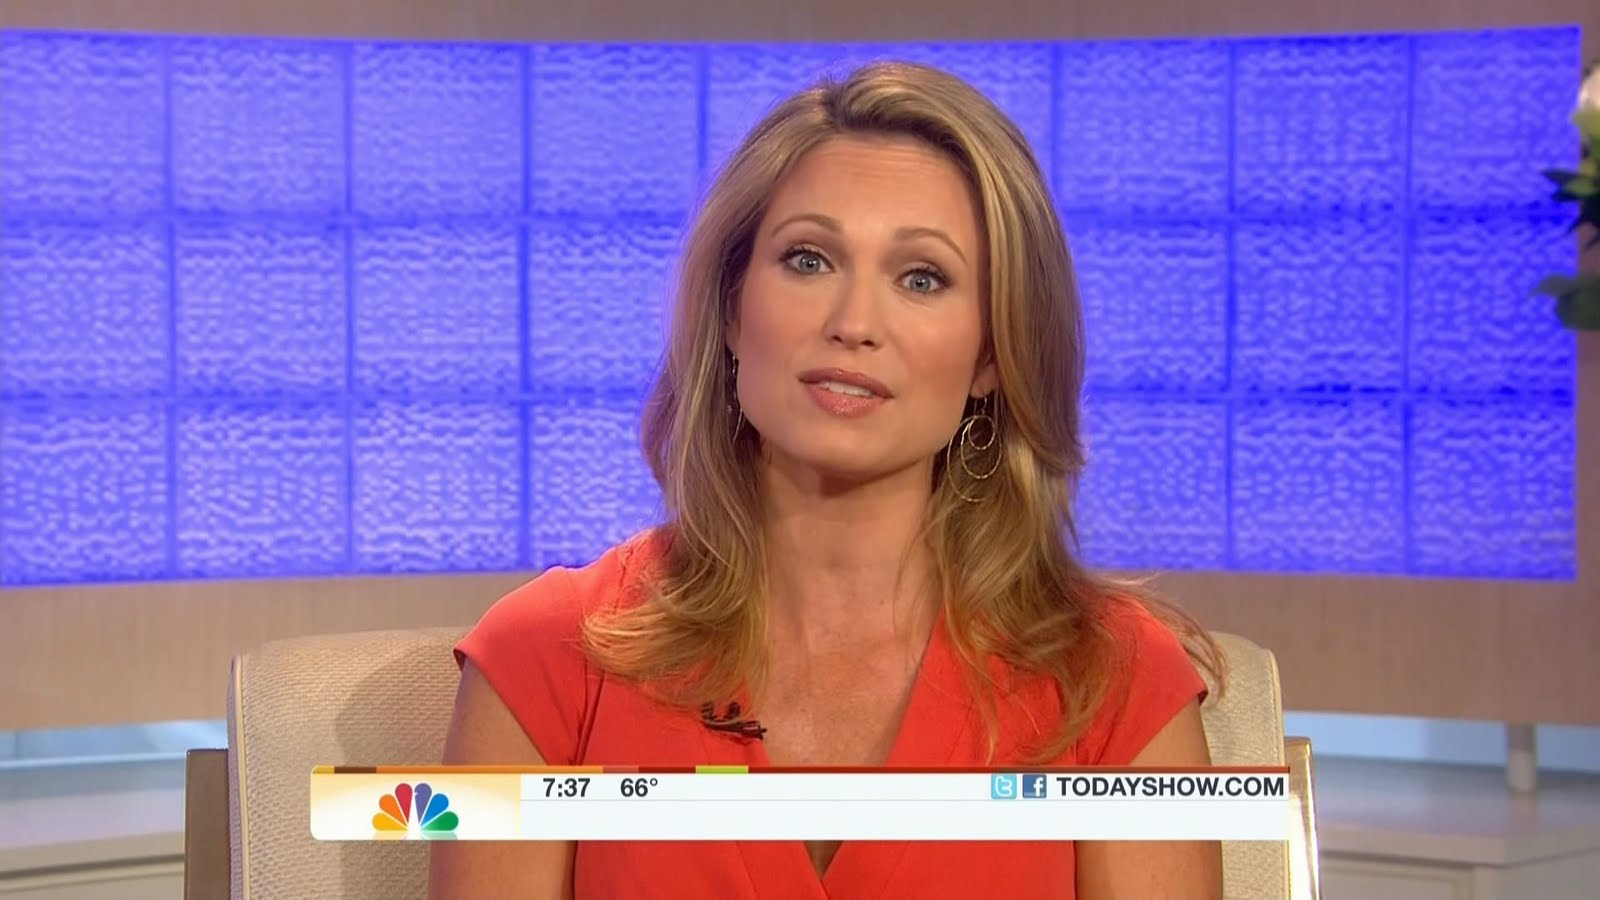 Amy robach in swimsuit who is amy robach amy robach is an anchor and